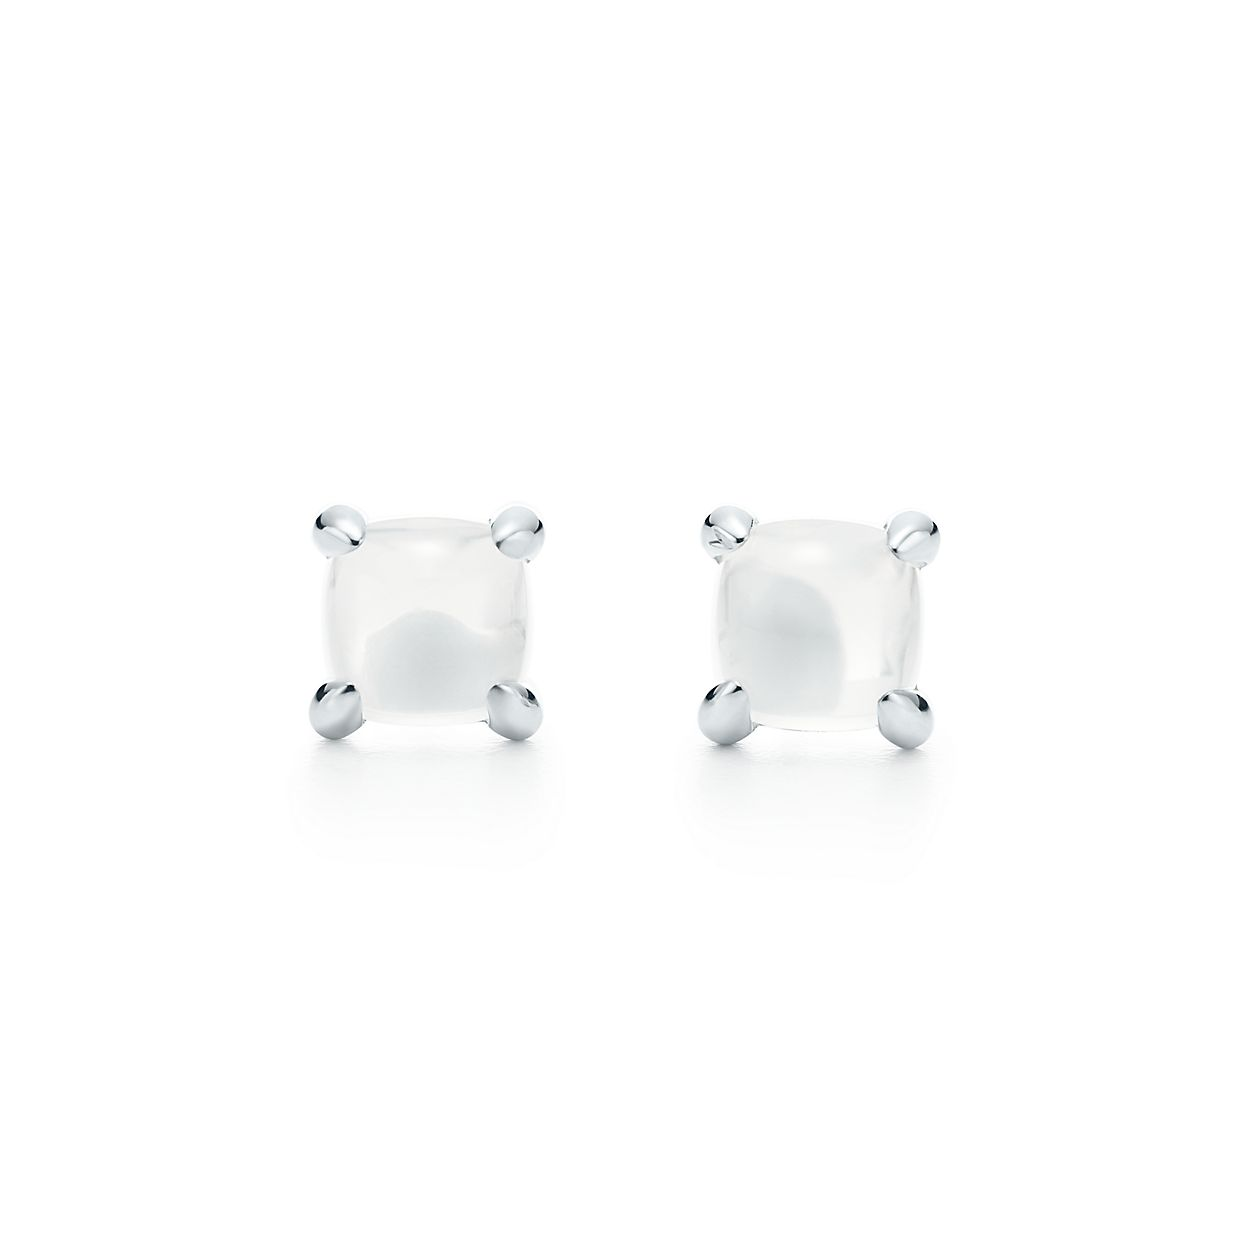 Palomas Sugar Stacks earrings in sterling silver with milky quartz Tiffany & Co. AtkcF9vFb